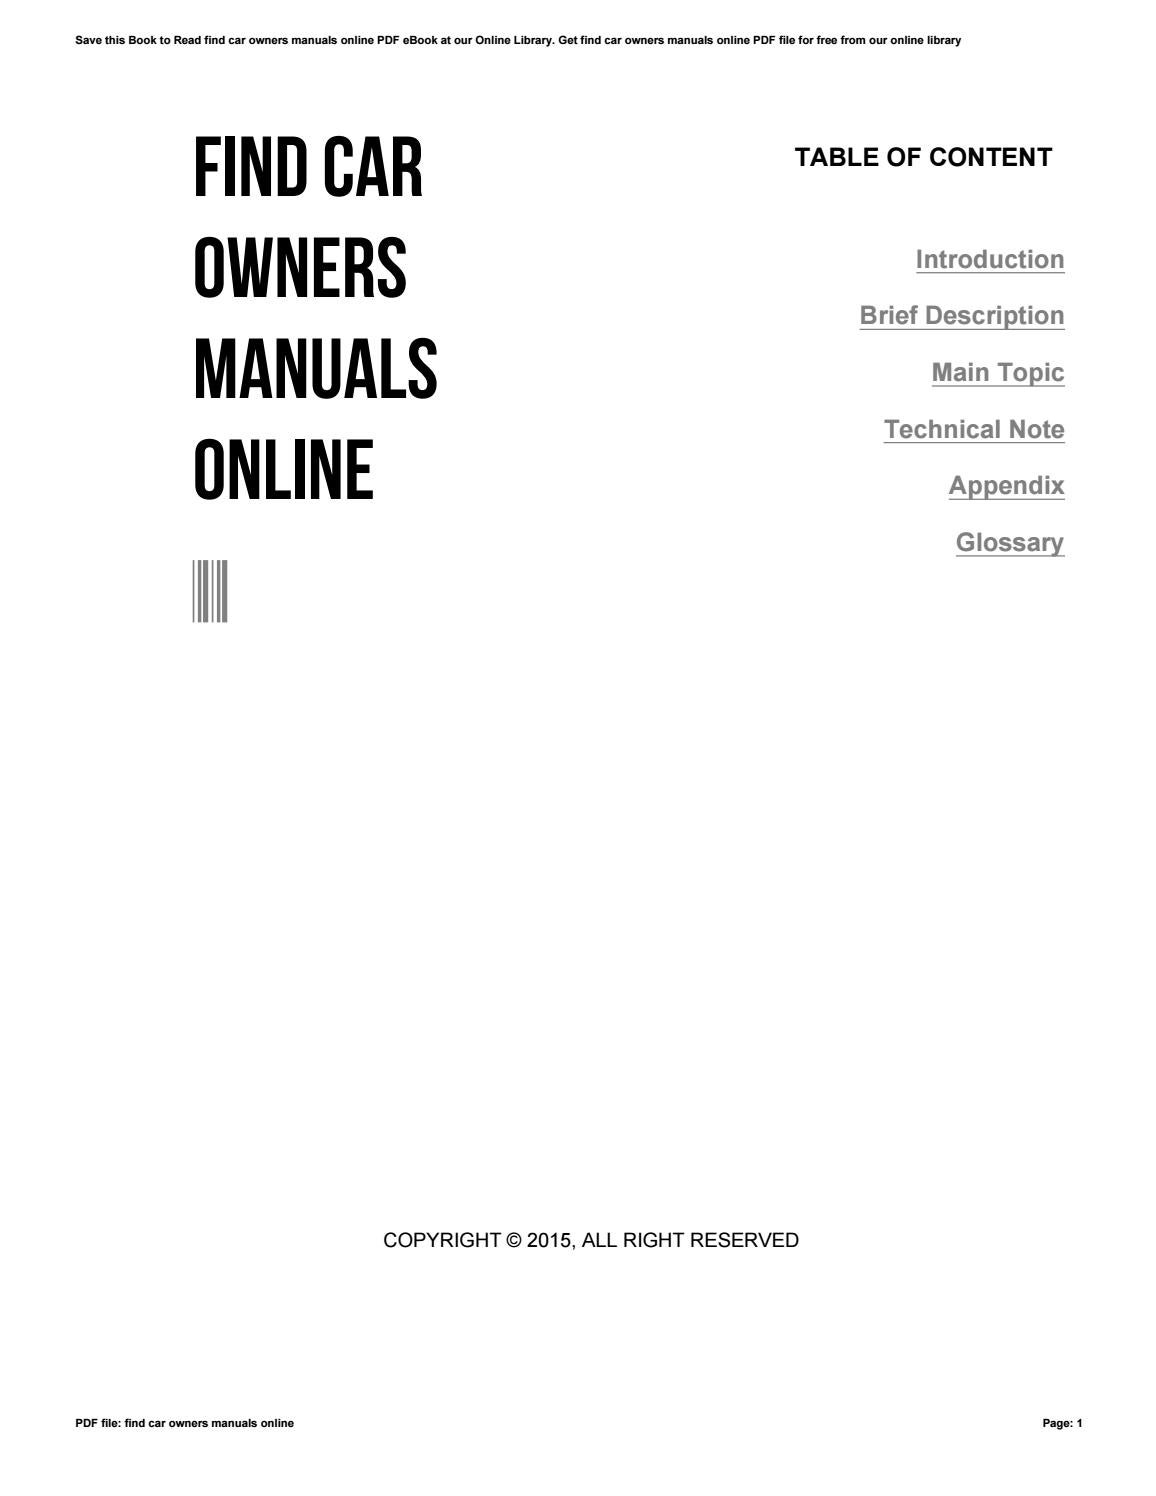 free owners manuals for cars online